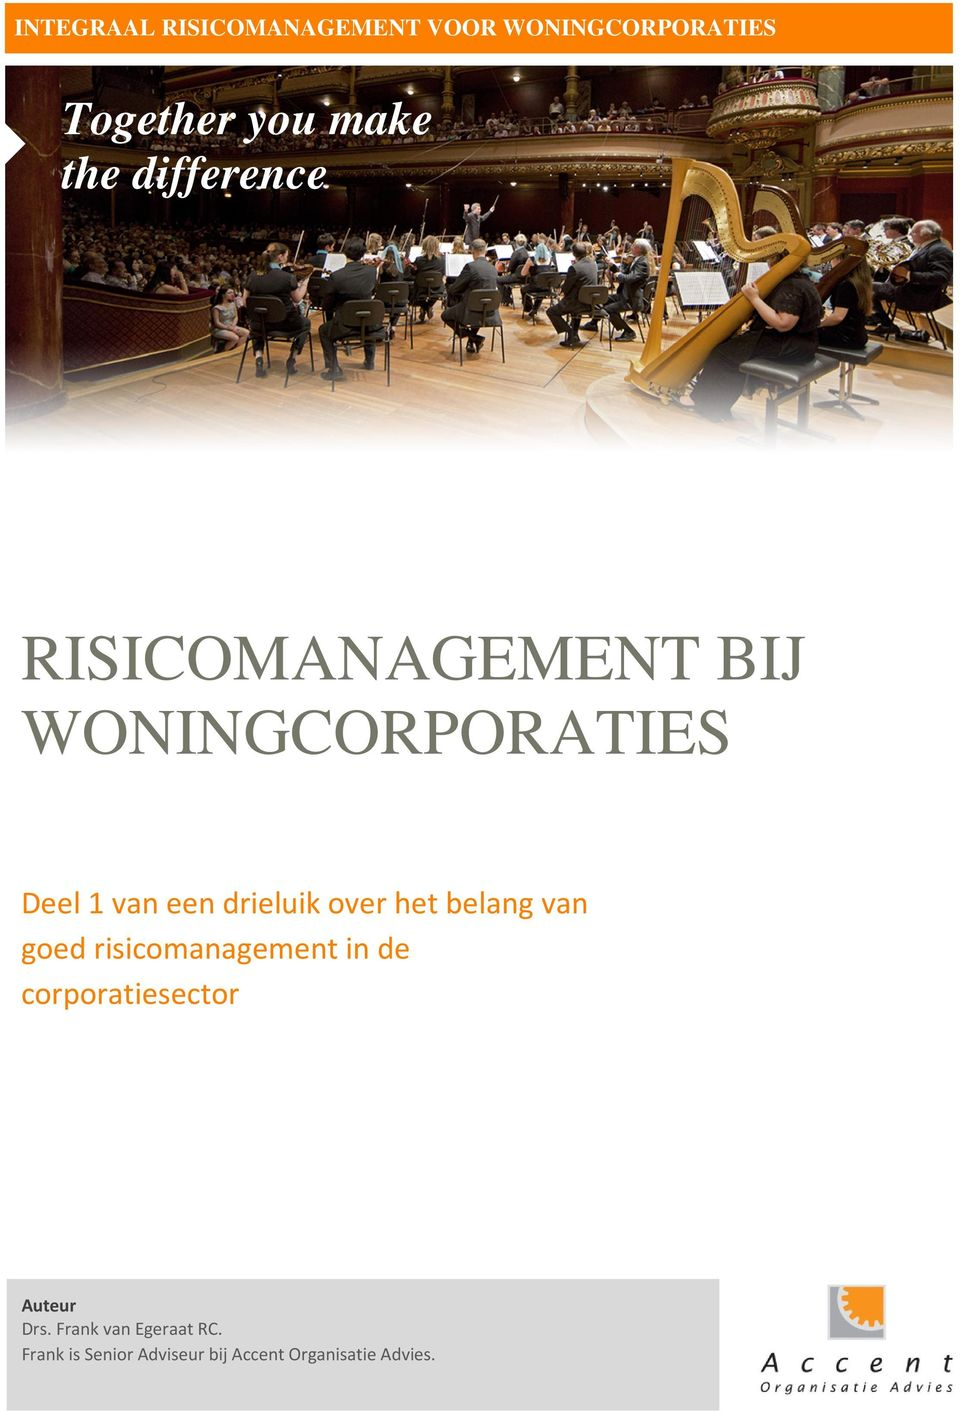 goed risicomanagement in de corporatiesector Auteur Drs.